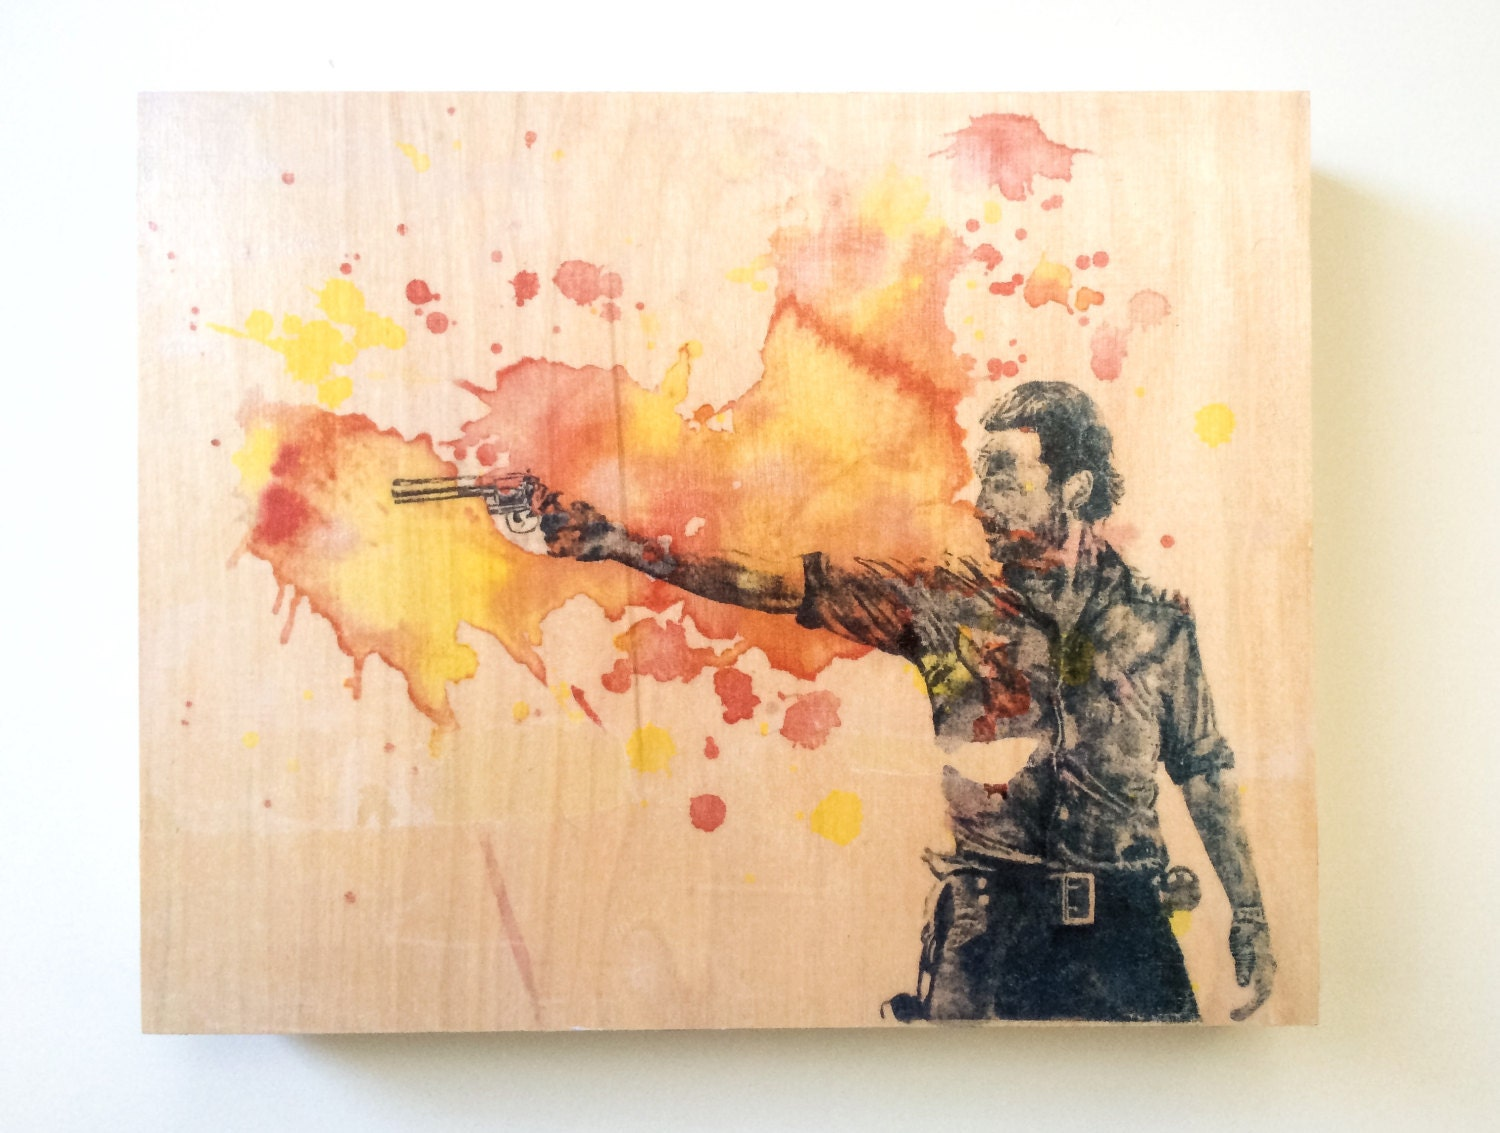 Wood panel rick grimes from the walking dead art print from - Wood panel artwork ...